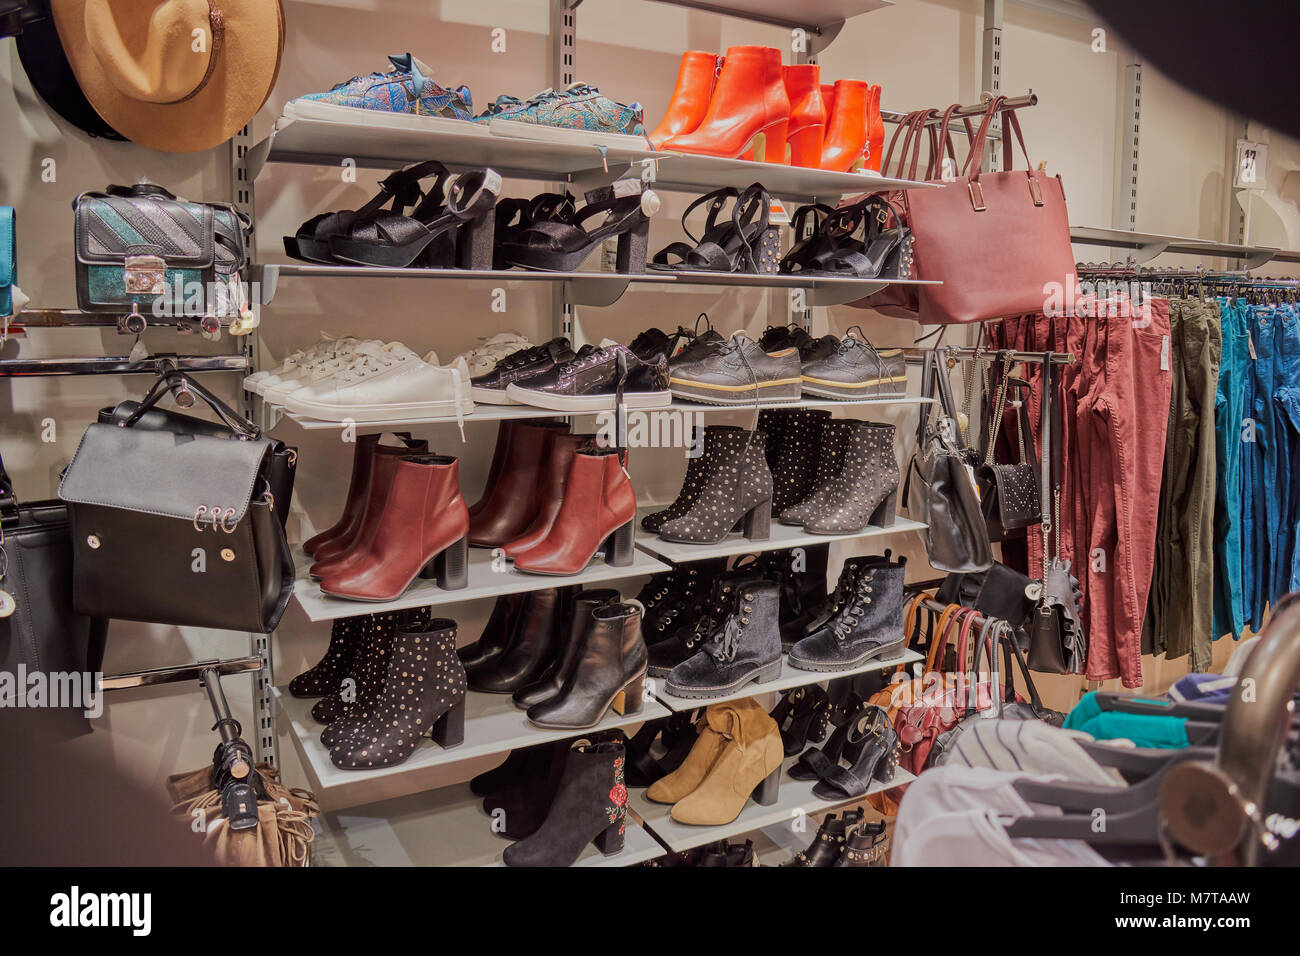 41a74b5f5230 Shoes And Bags Shop Stock Photos   Shoes And Bags Shop Stock Images ...